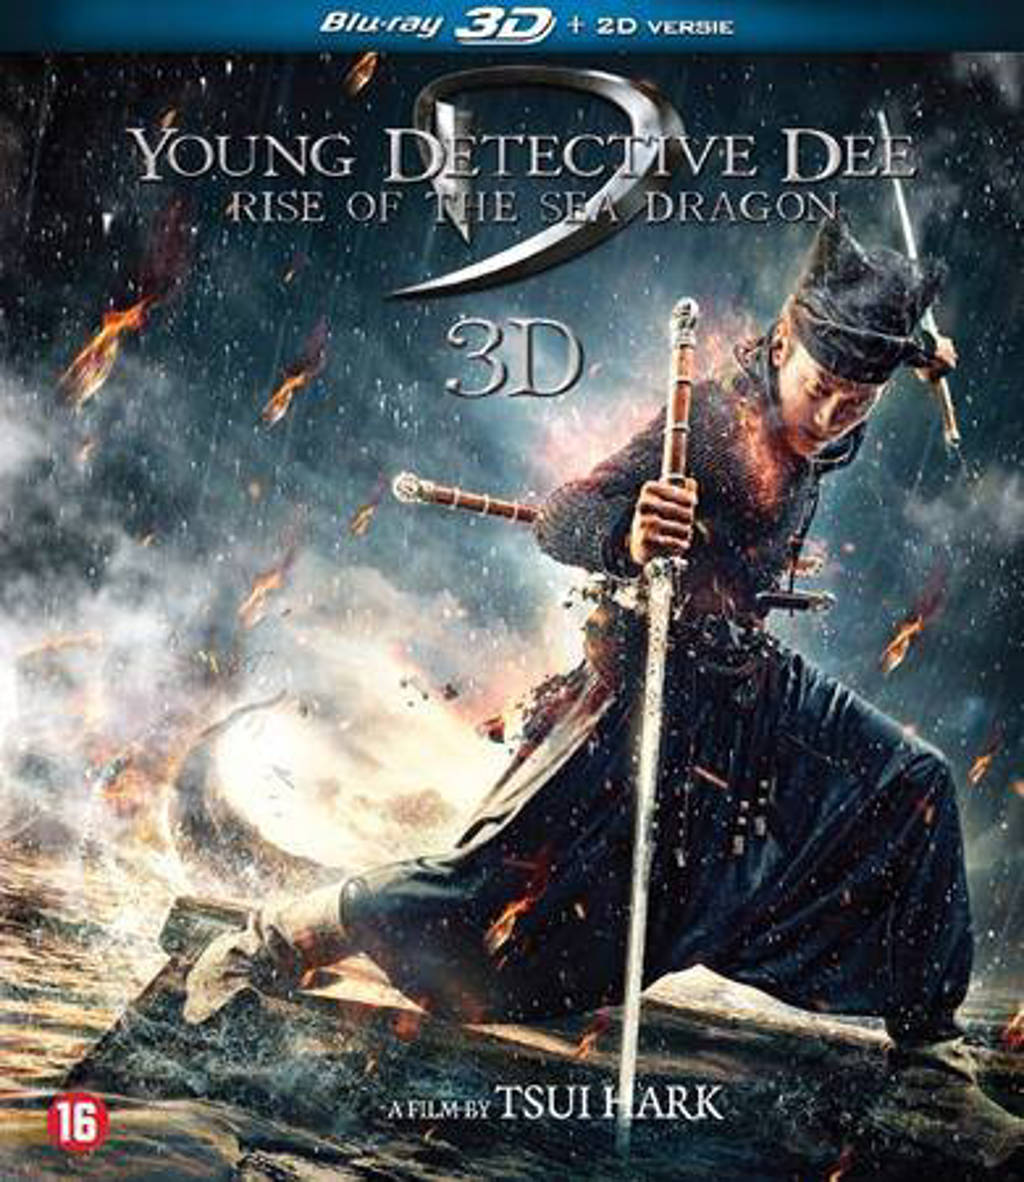 Young detective dee (3D) (Blu-ray)